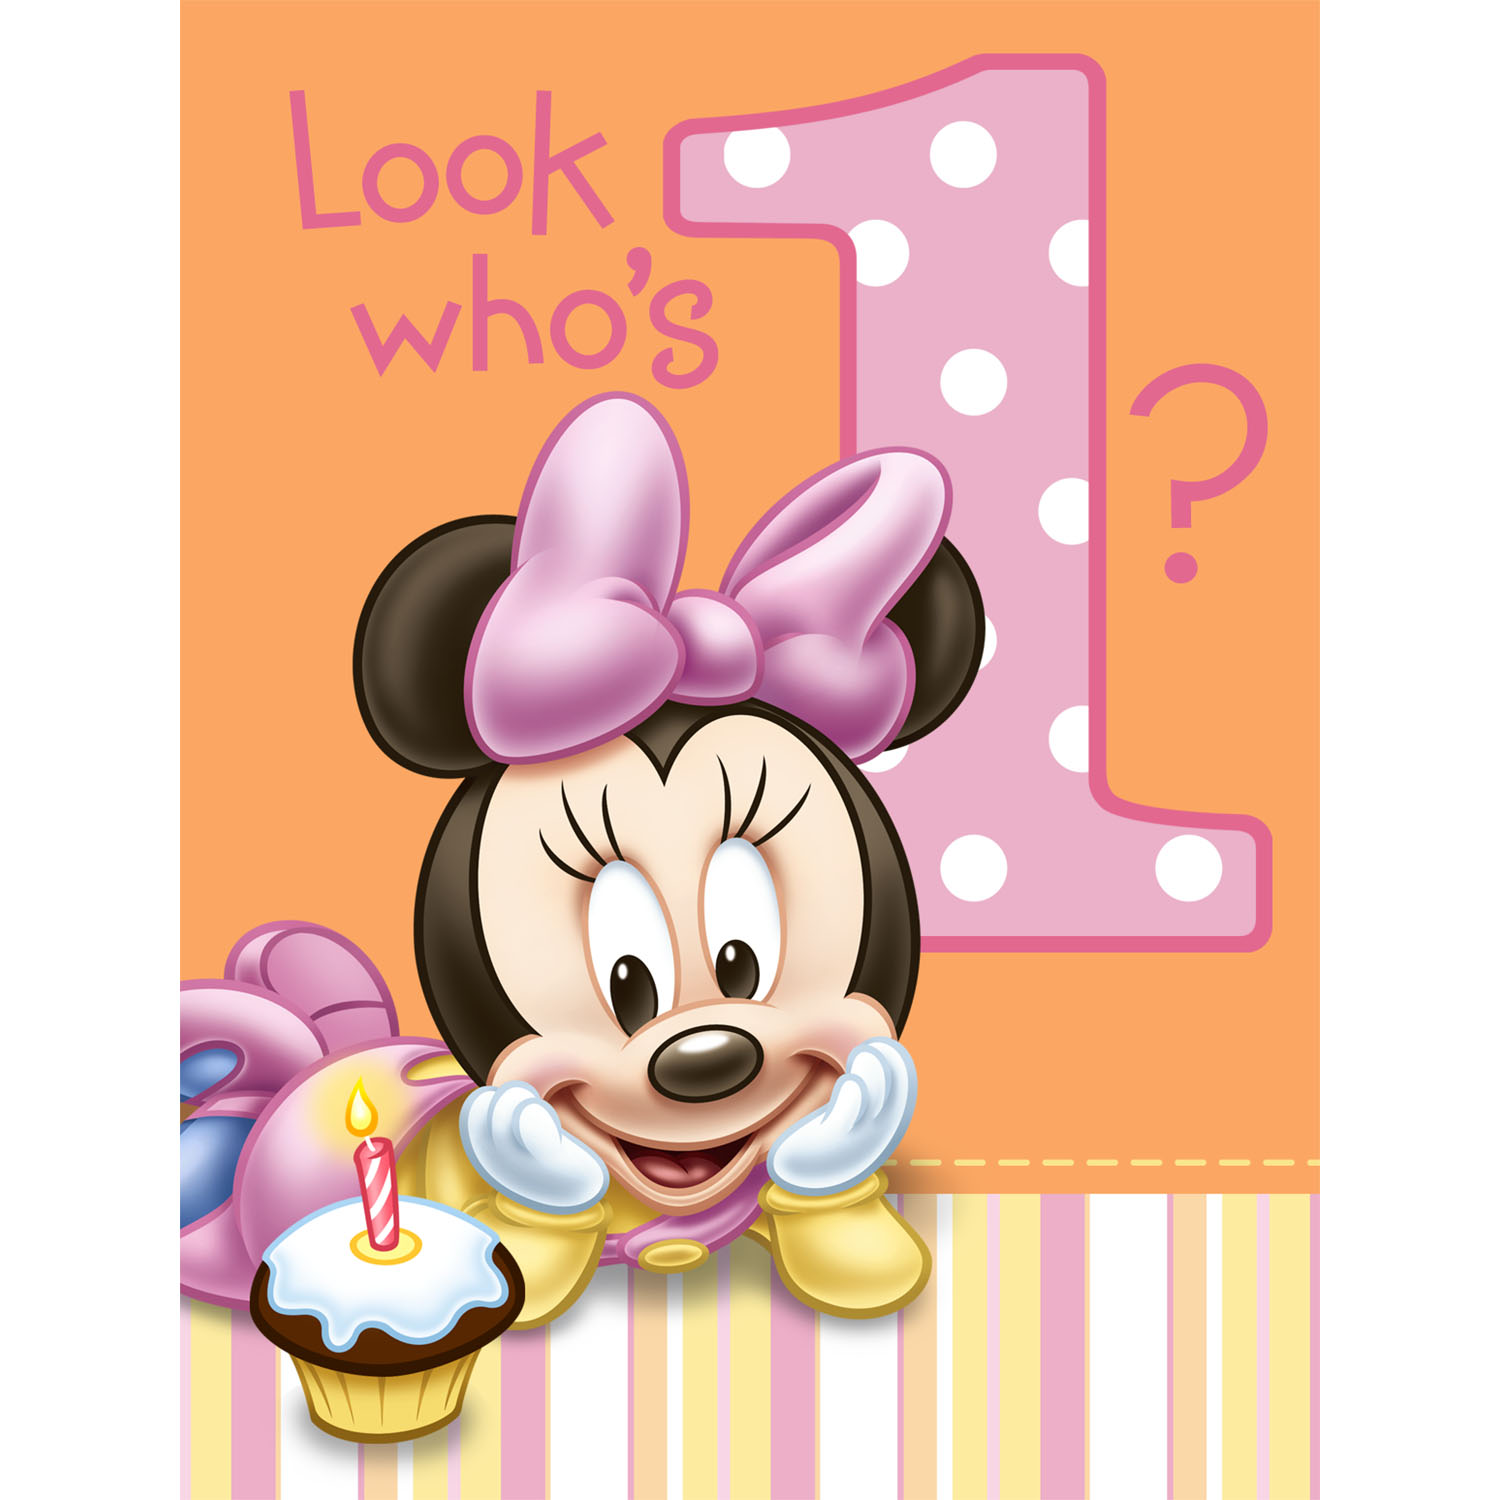 Minnie mouse 1st birthday clipart banner freeuse download 17 Best images about Minnie mouse on Pinterest | Disney, Clip art ... banner freeuse download